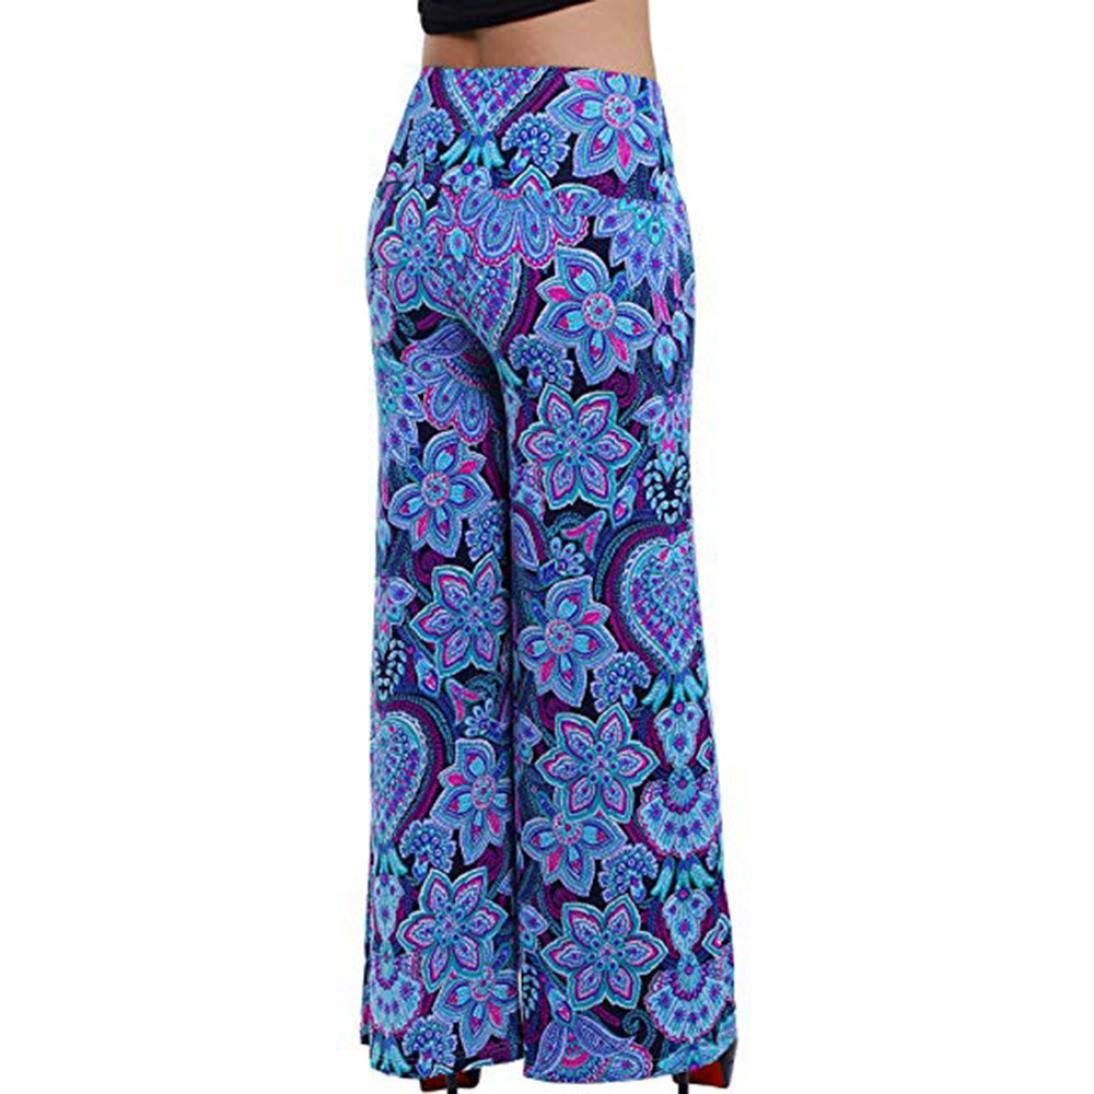 d1bb173389b Sixcup Women Sexy Wide Leg Stretchy Boho Floral Printed Elastic Waistband  Mid-Waist Flare Pants Palazzo Bootleg Trousers  Amazon.co.uk  Clothing